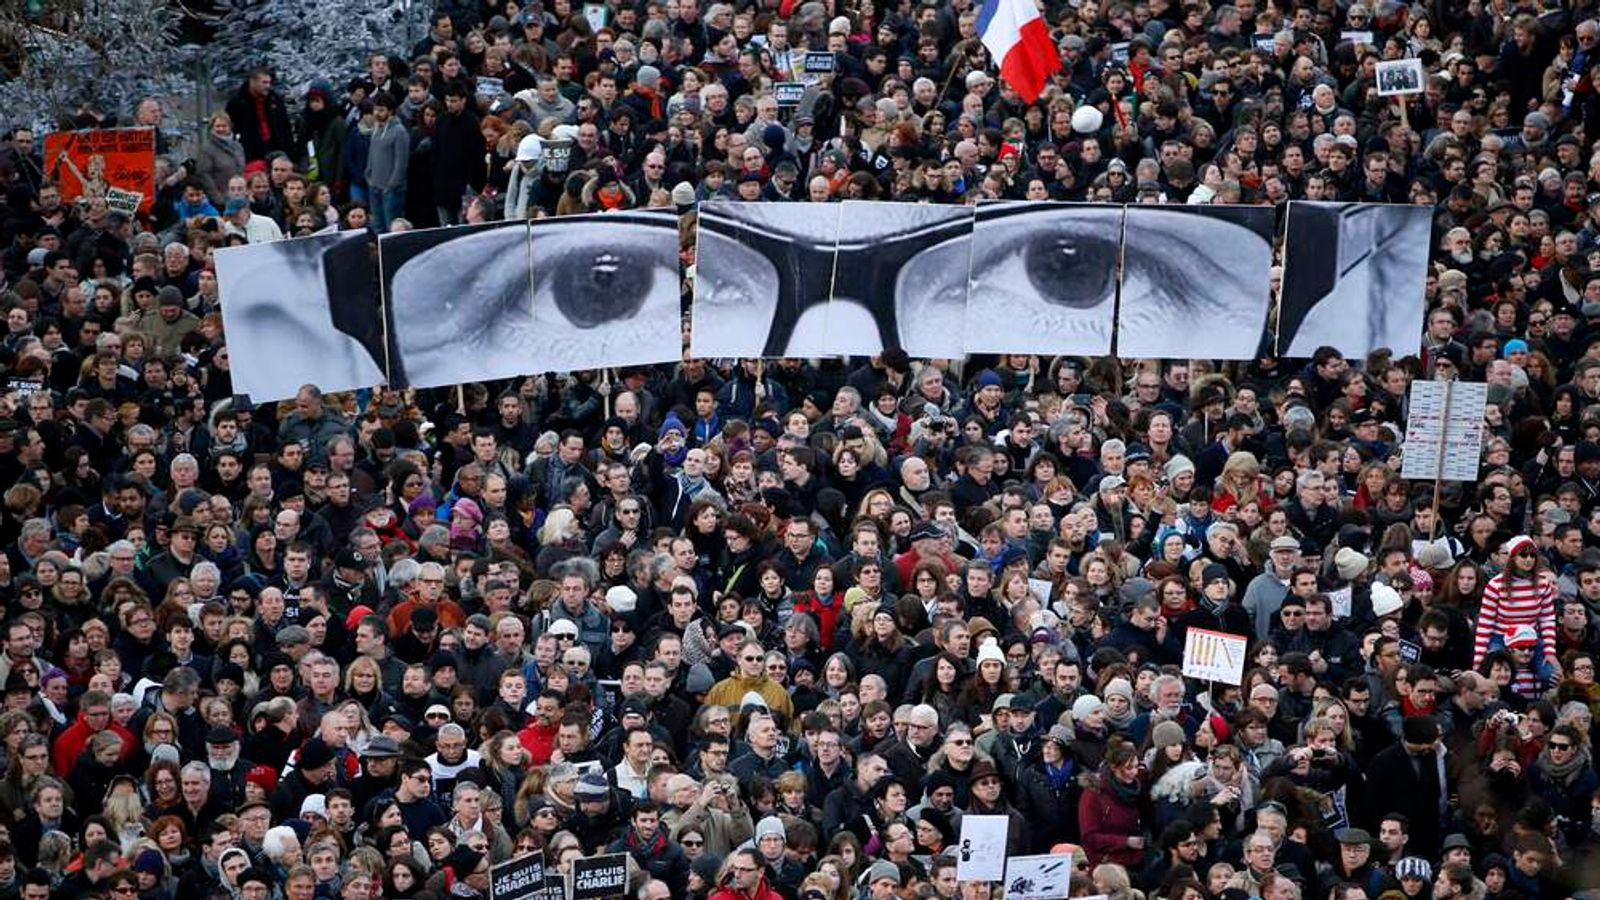 Hundreds of thousands of French citizens take part in a solidarity march (Marche Republicaine) in the streets of Paris